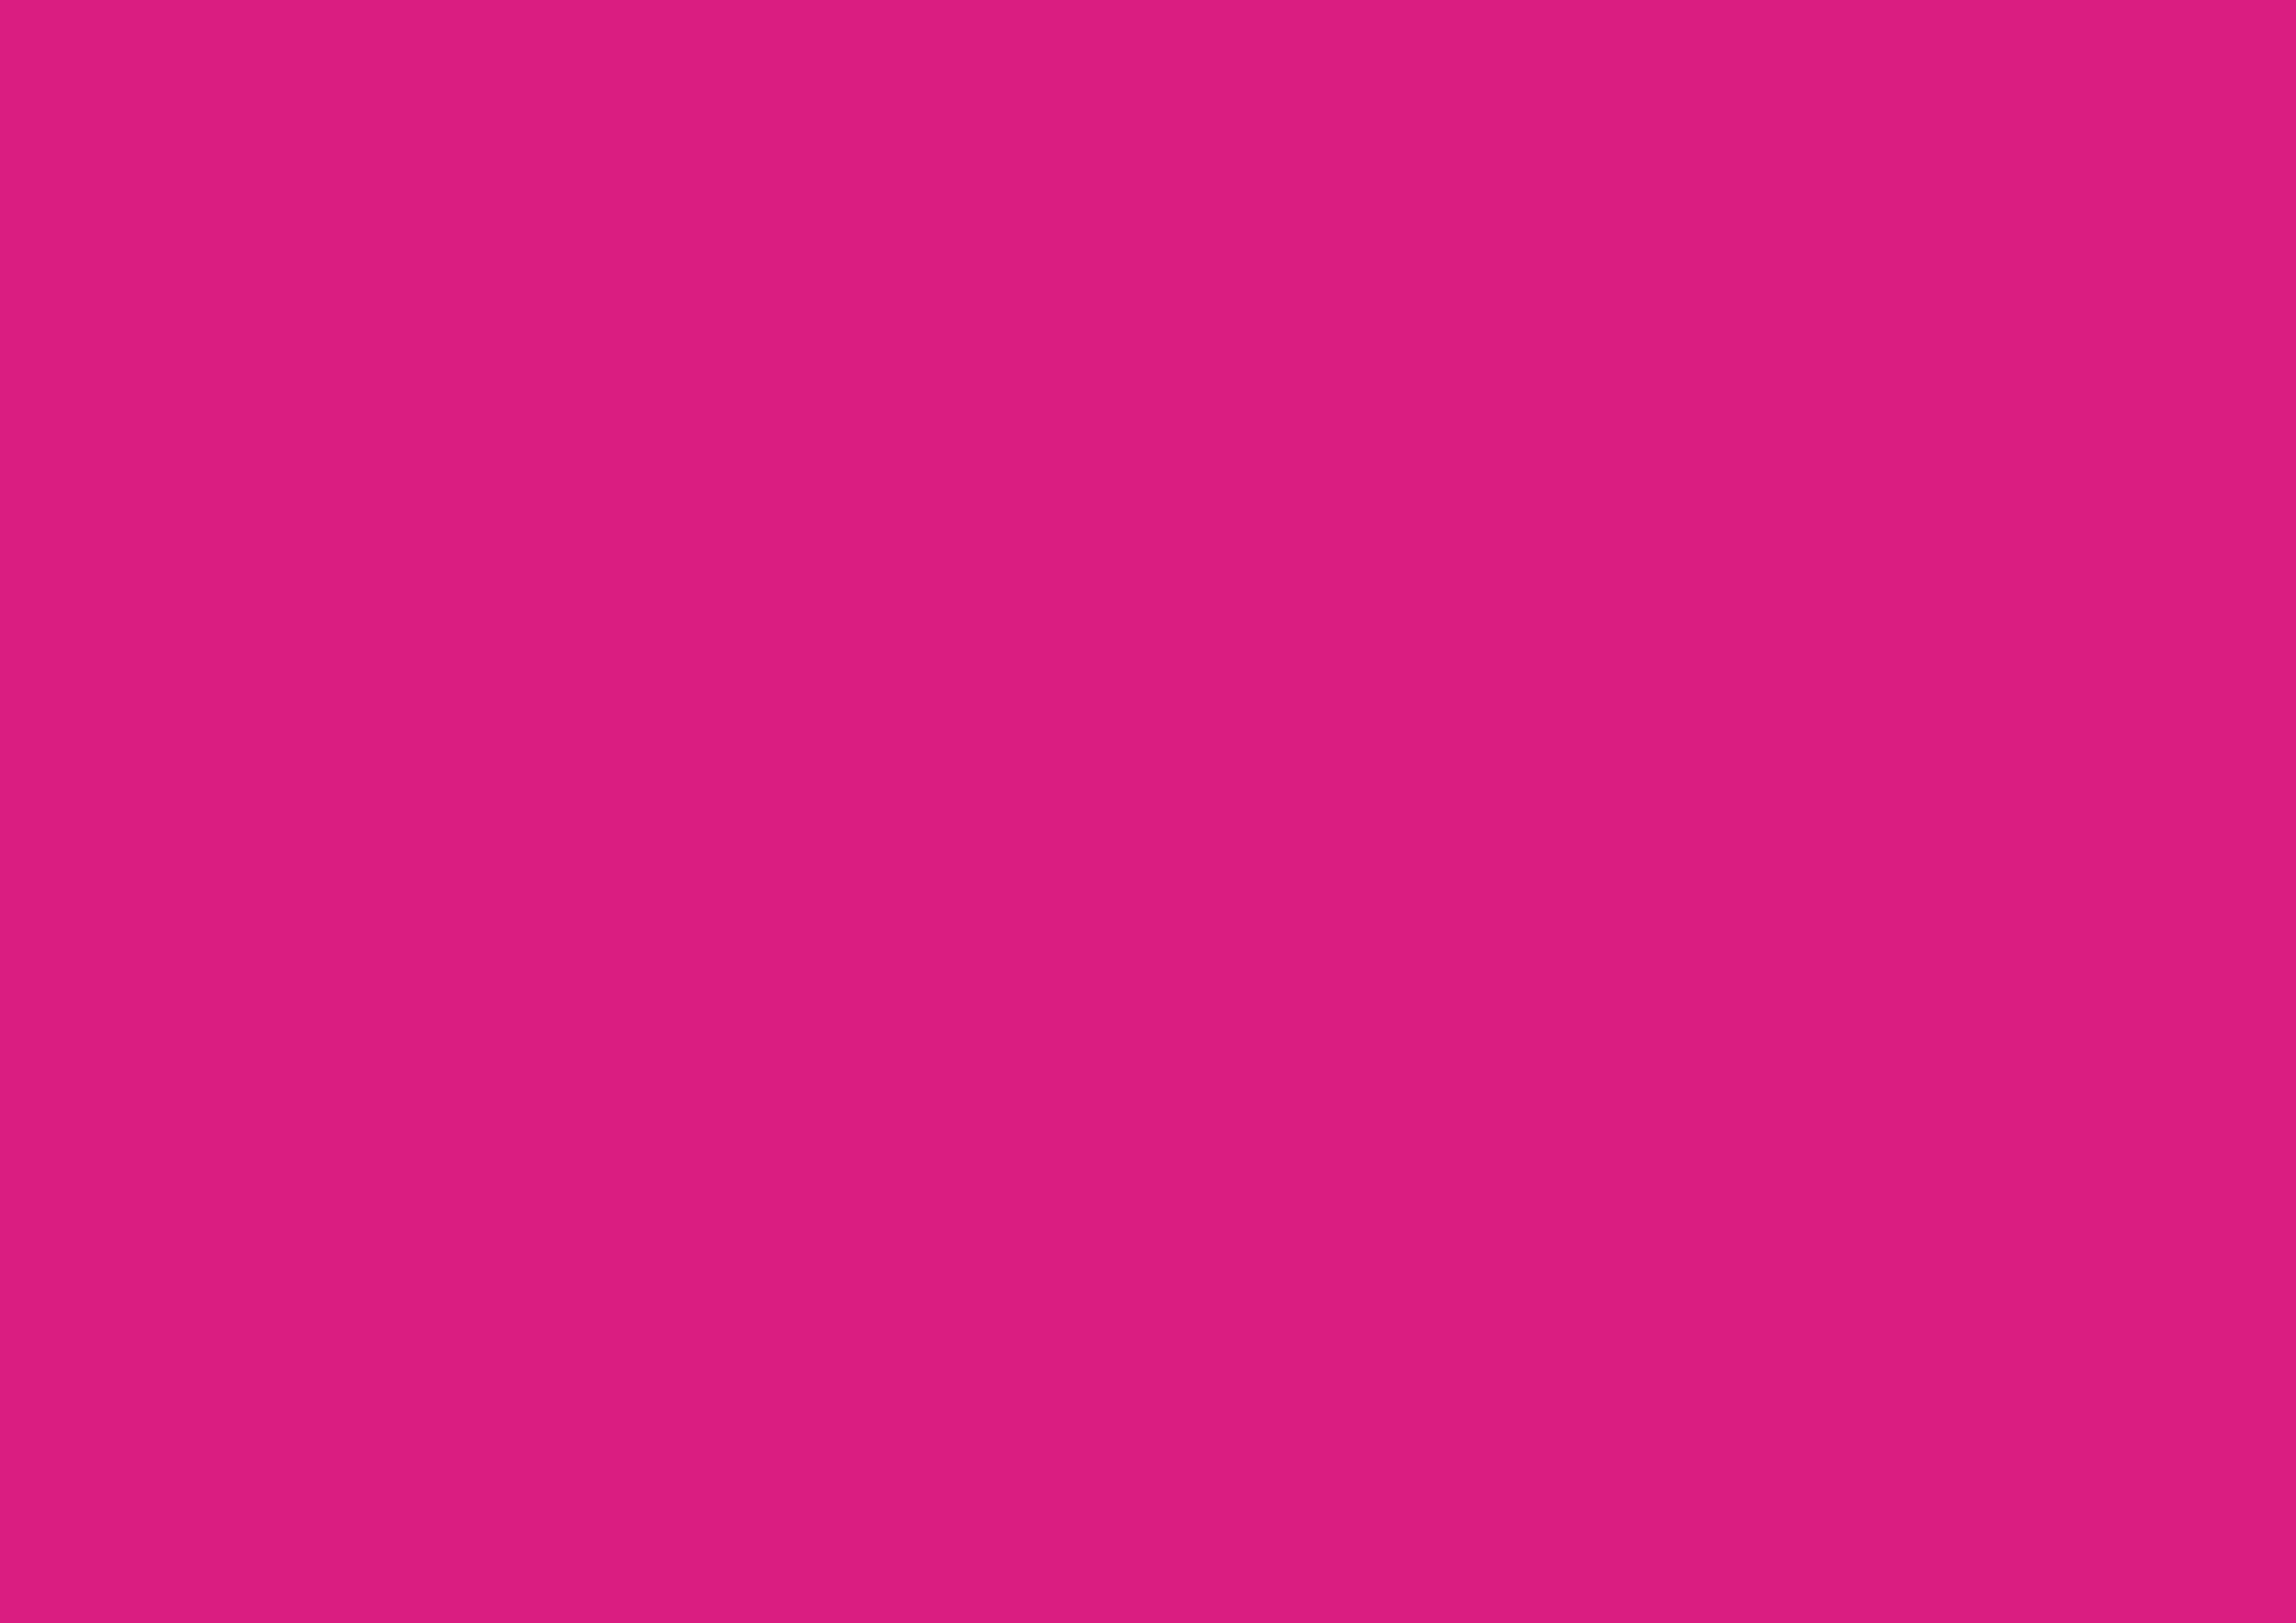 3508x2480 Vivid Cerise Solid Color Background